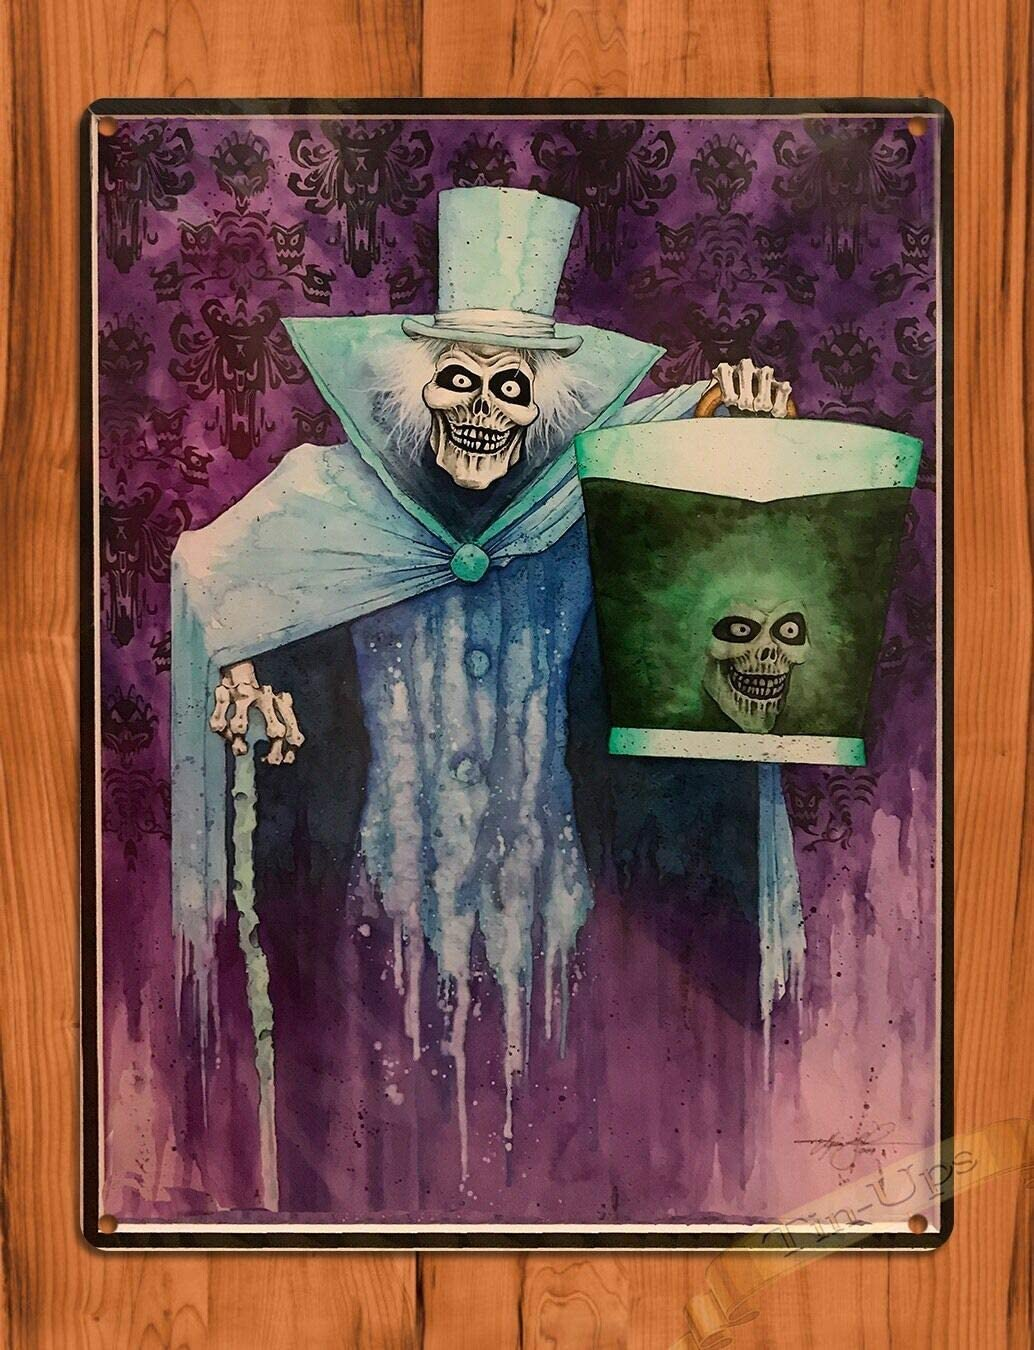 SIGNCHAT Tin Sign Haunted Mansion Hatbox Ghost Christmas Halloween Props Metal SignArt Ride Movie Christmas Halloween Props Metal Sign 8x12 inch